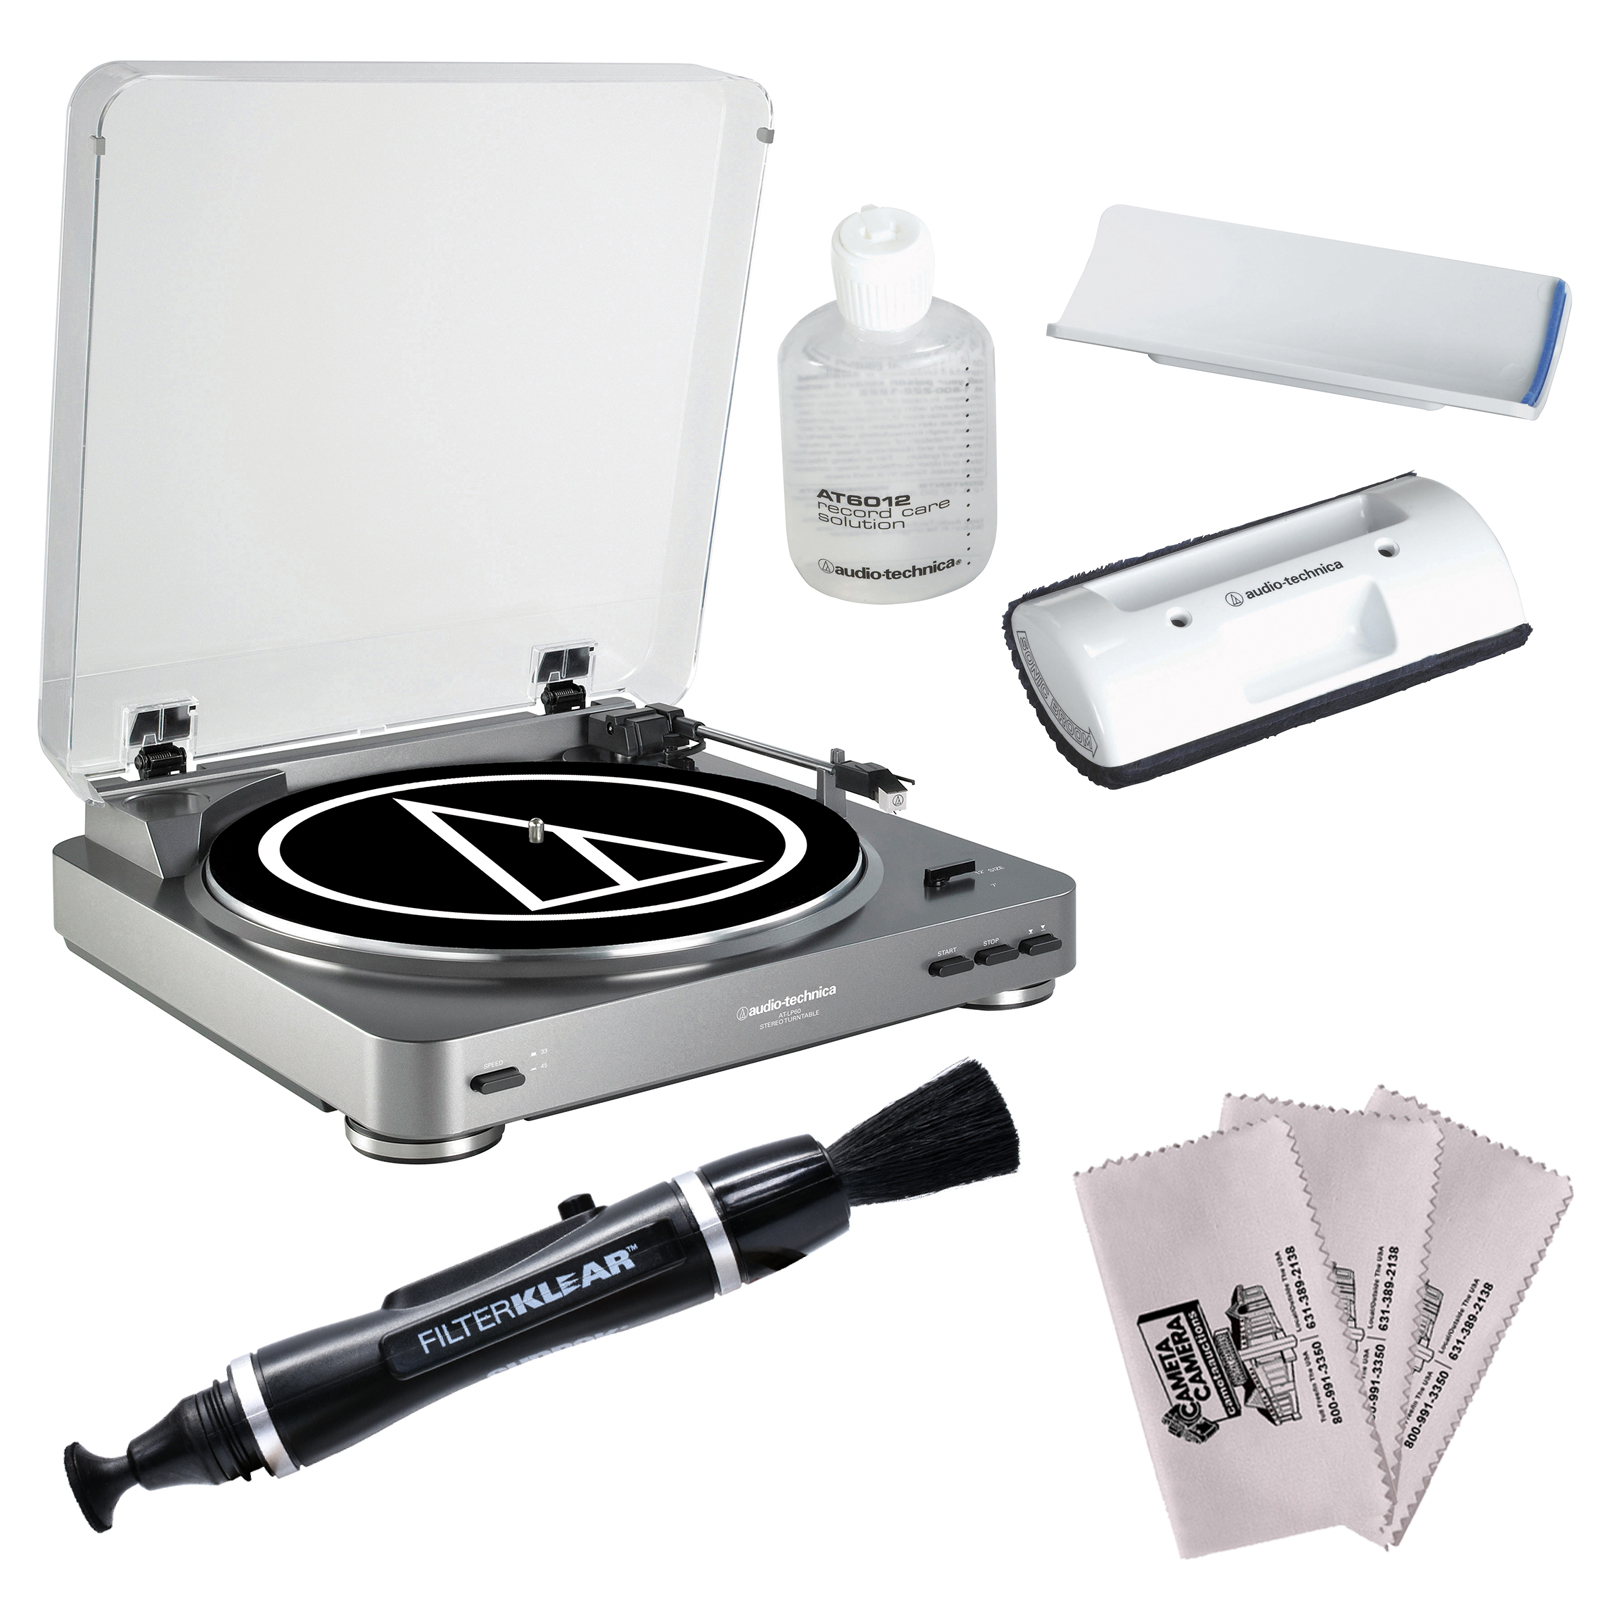 Audio-Technica AT-LP60-USB Automatic Belt-Drive Turntable & Recording Software (Silver) with Record Care + Cleaning Kit